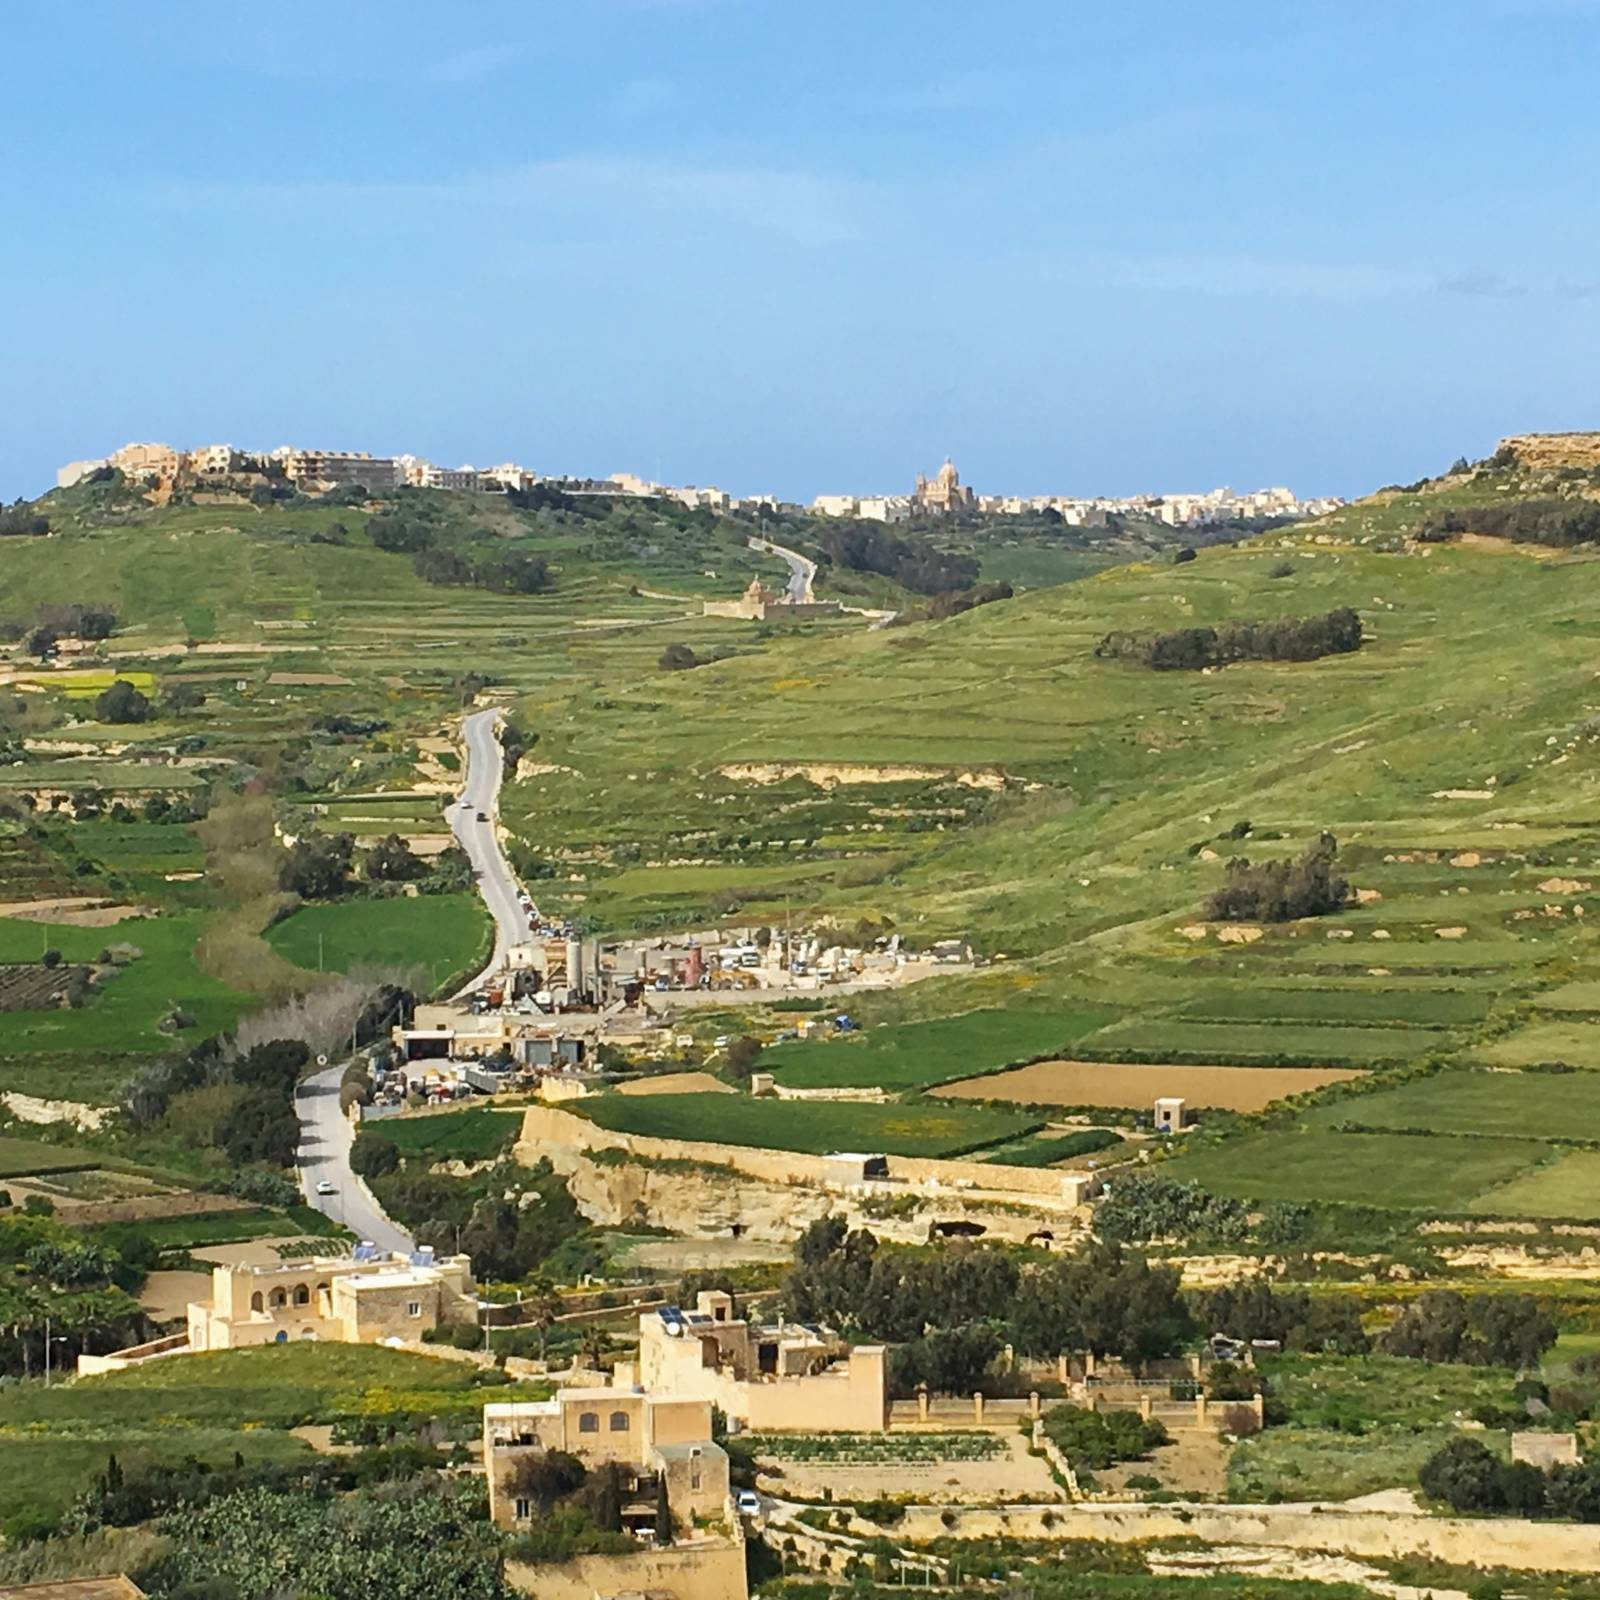 View over Gozo from the battlements of the Citadello in Victoria